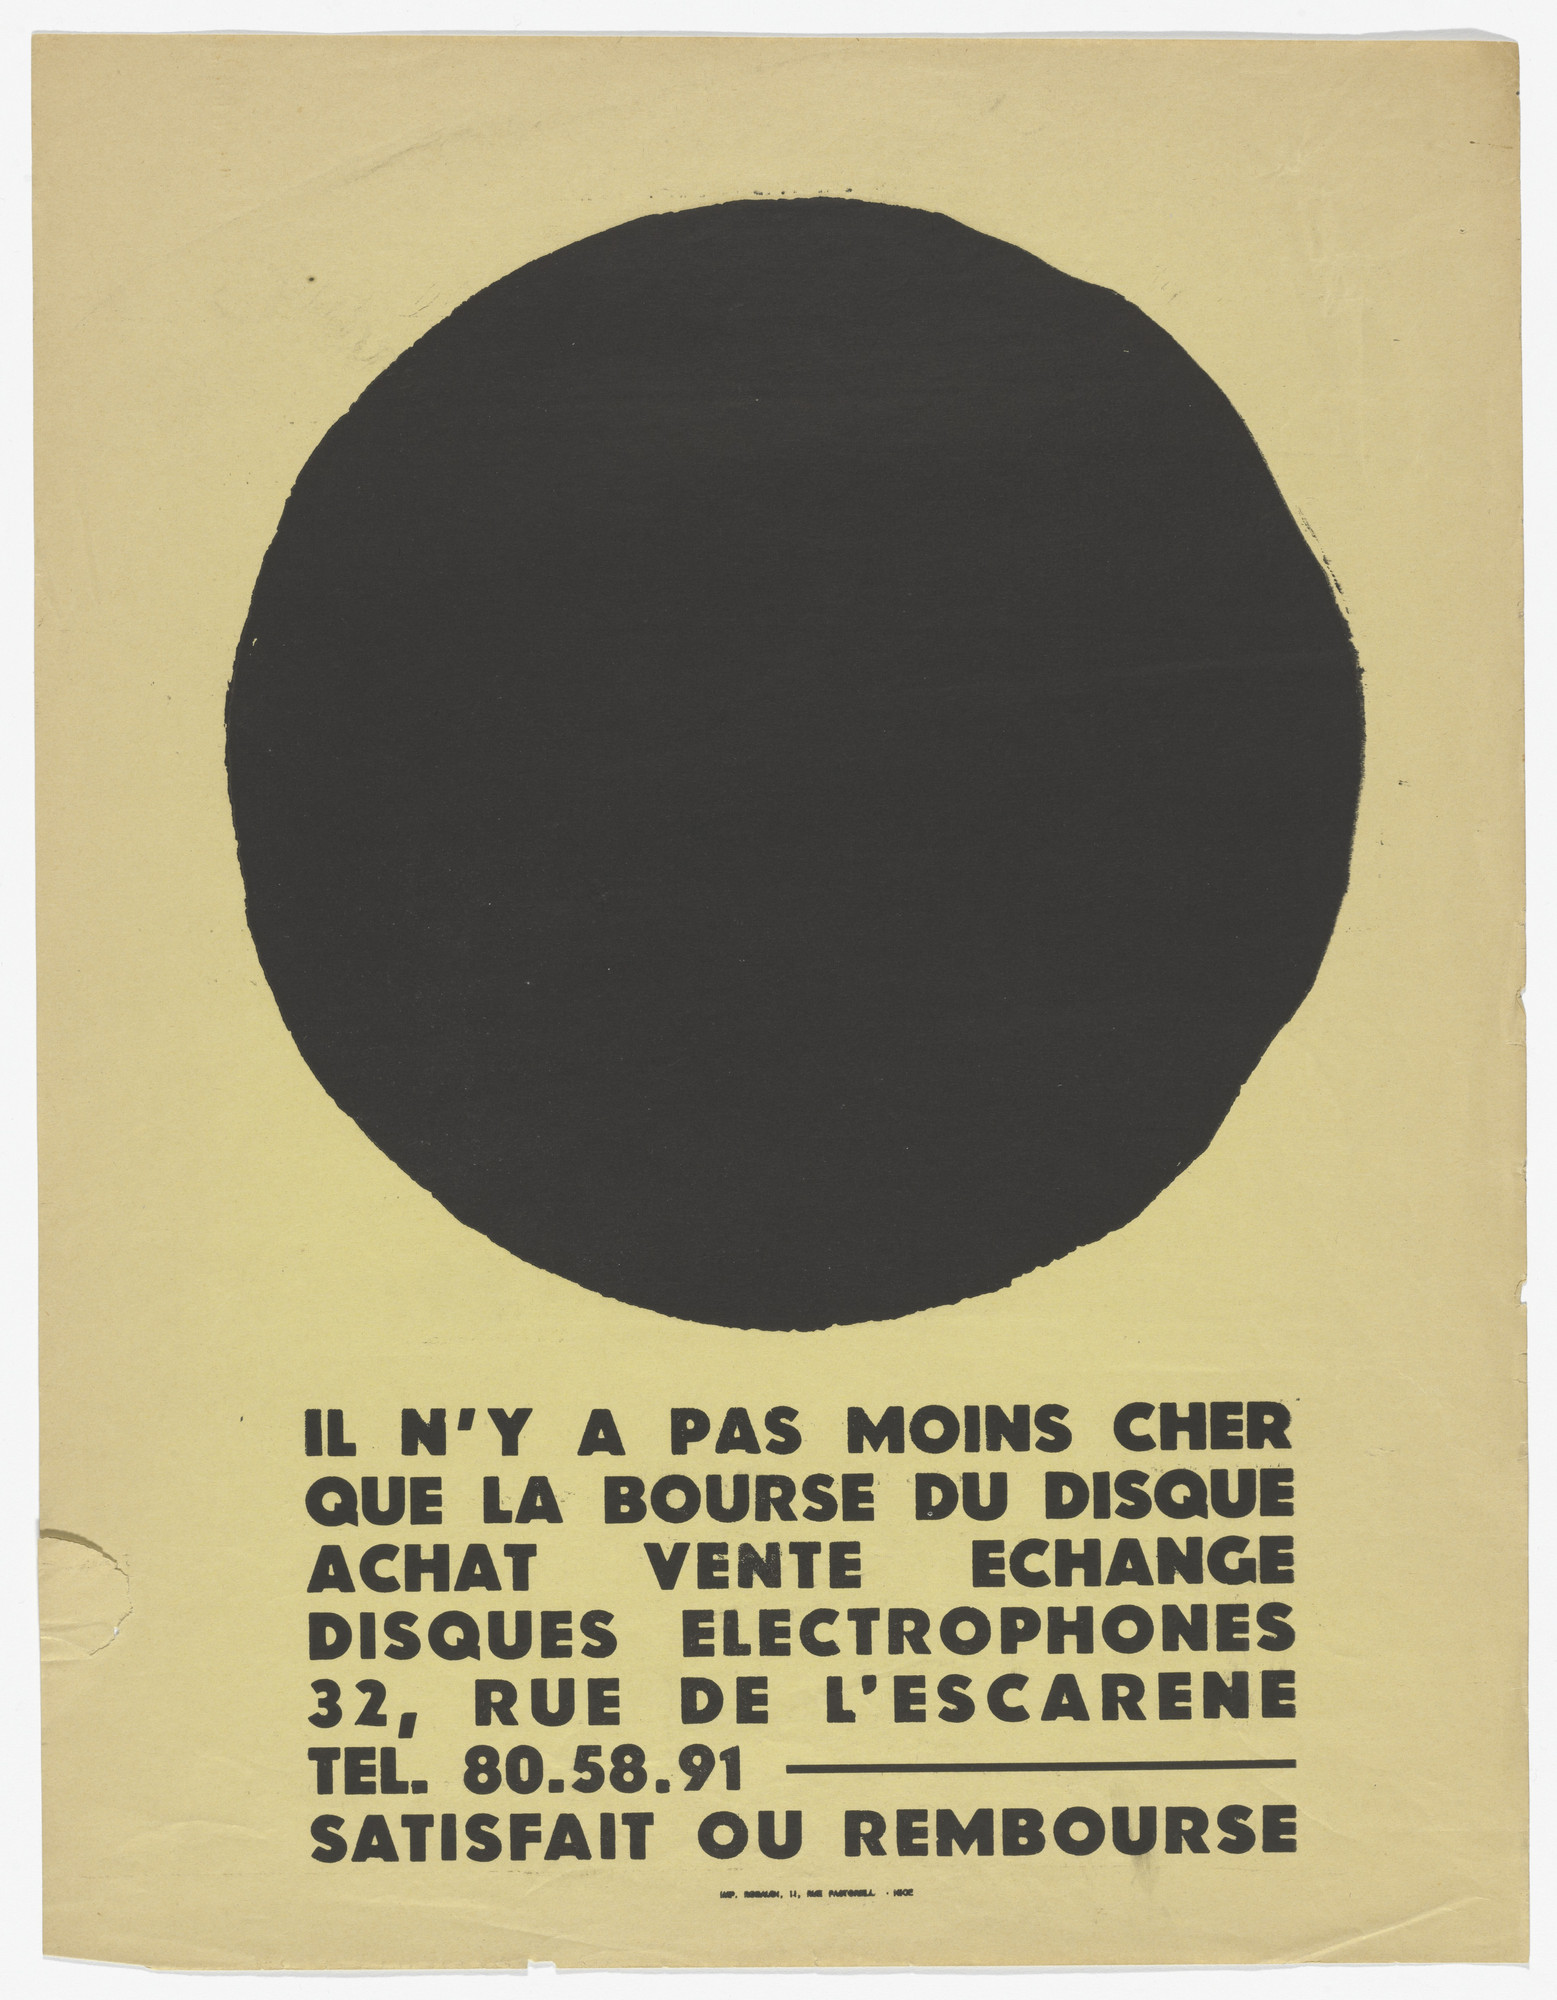 Ben Vautier. Il n'y a pas moins cher que la bourse du disque (There is nothing cheaper than the record market). c. 1958